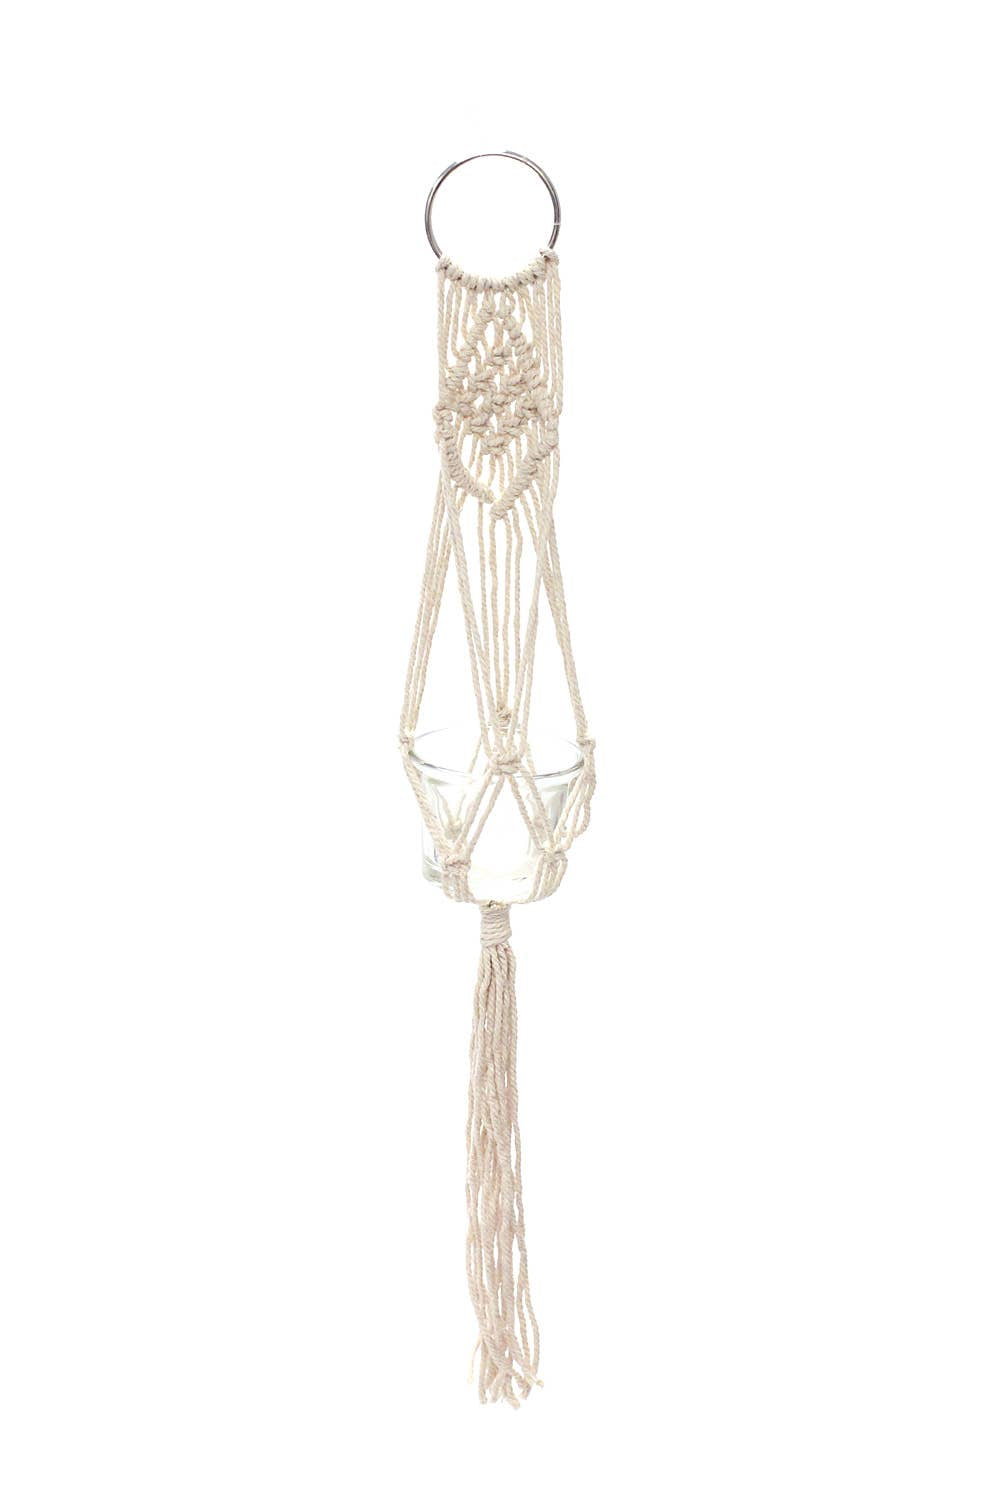 Soul of the Party - Mini Macrame Plant Hanger